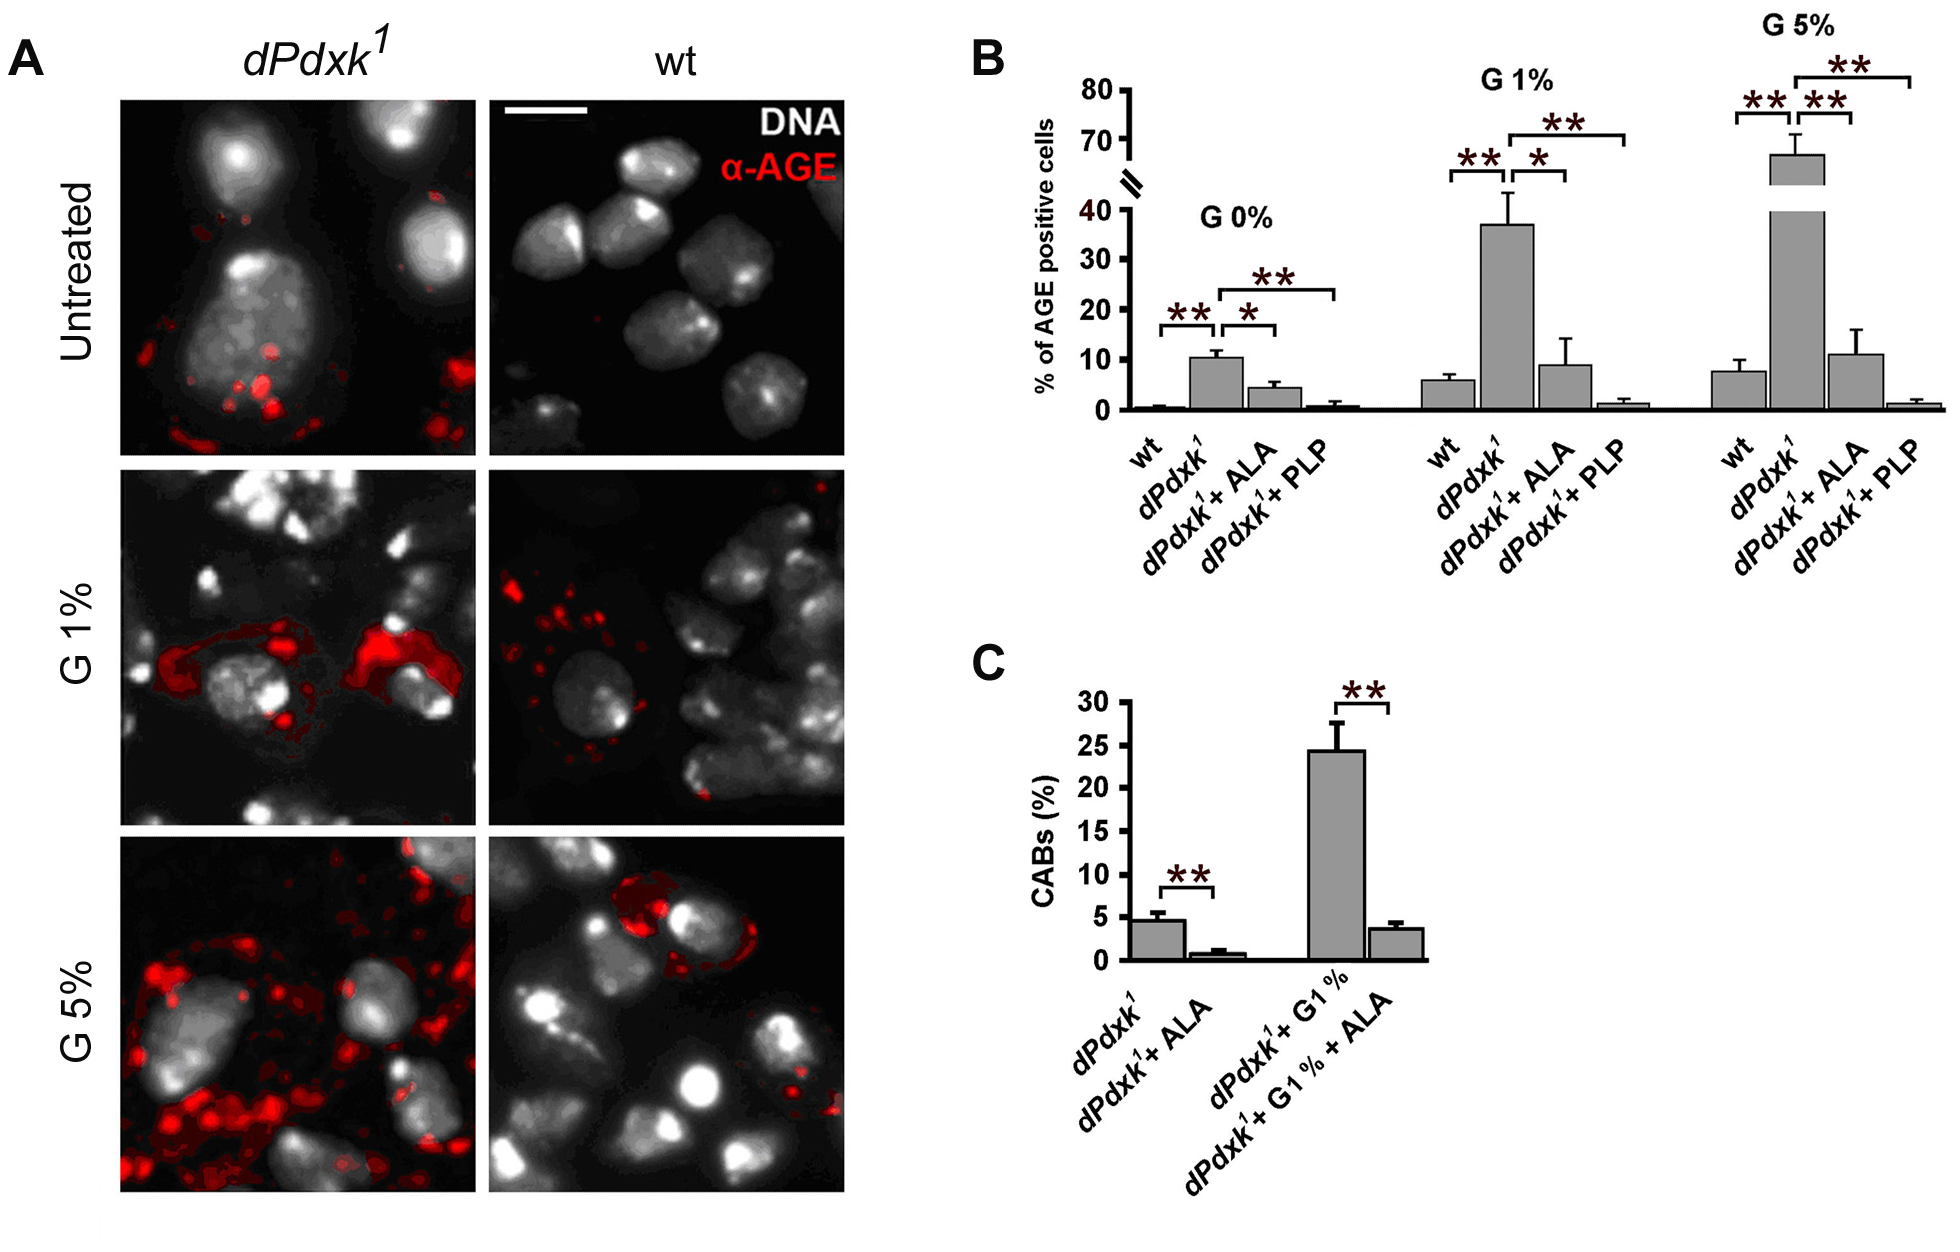 <i>dPdxk<sup>1</sup></i> mutant brains exhibit higher frequencies of AGE-positive cells than wild type (wt) brains.